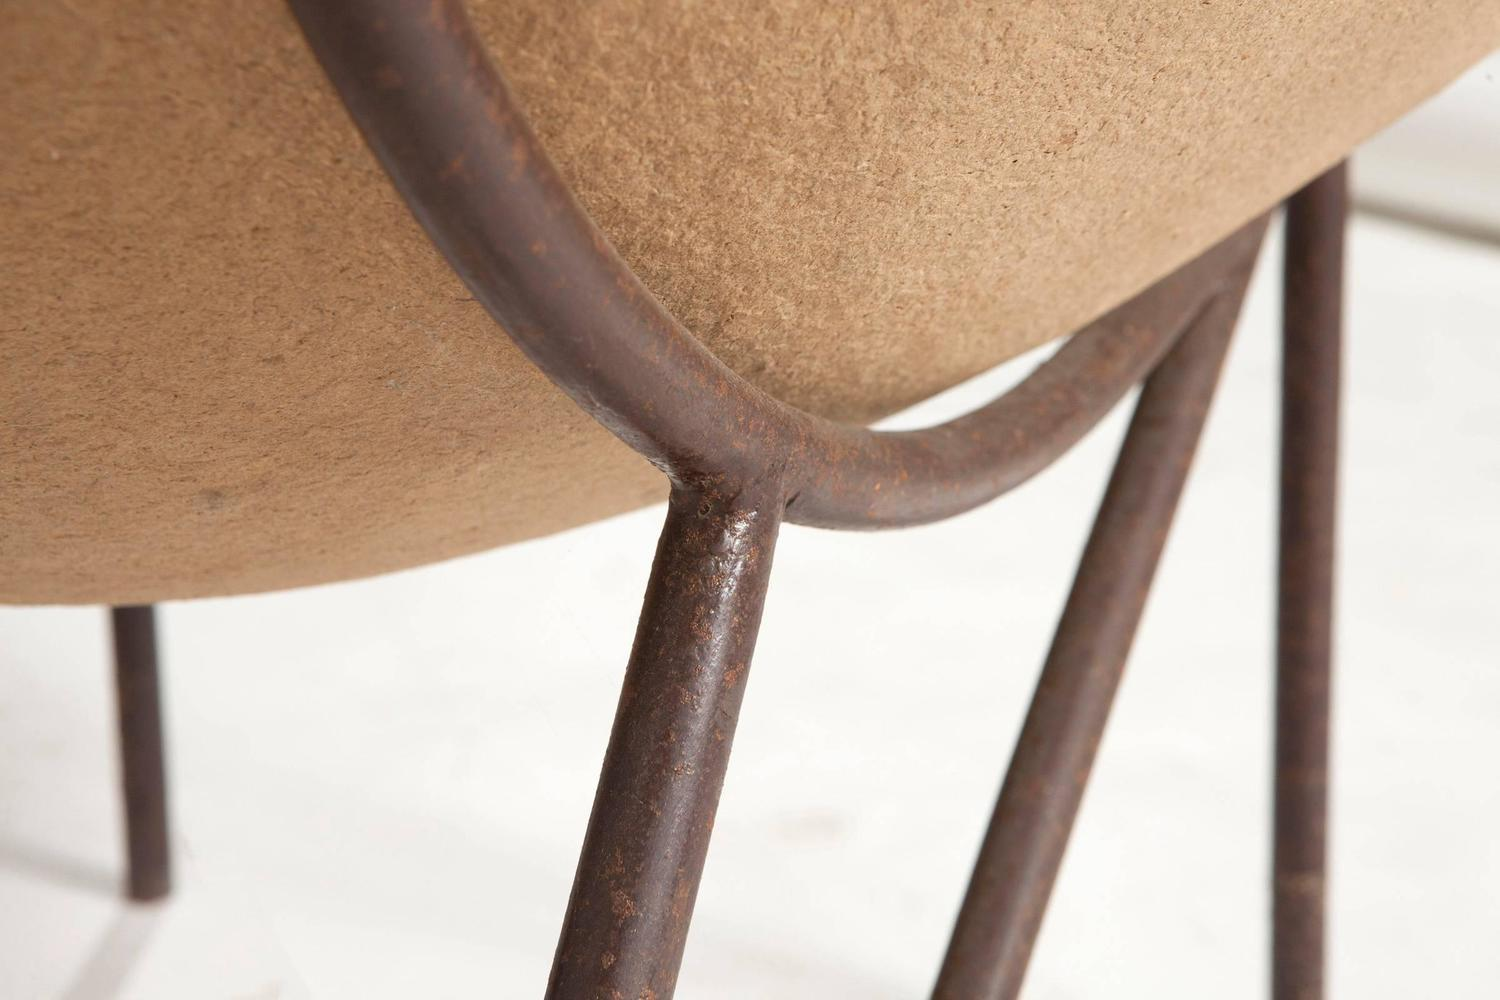 Brazilian semine armchair in recycled cardboard by for 7 furniture doral fl